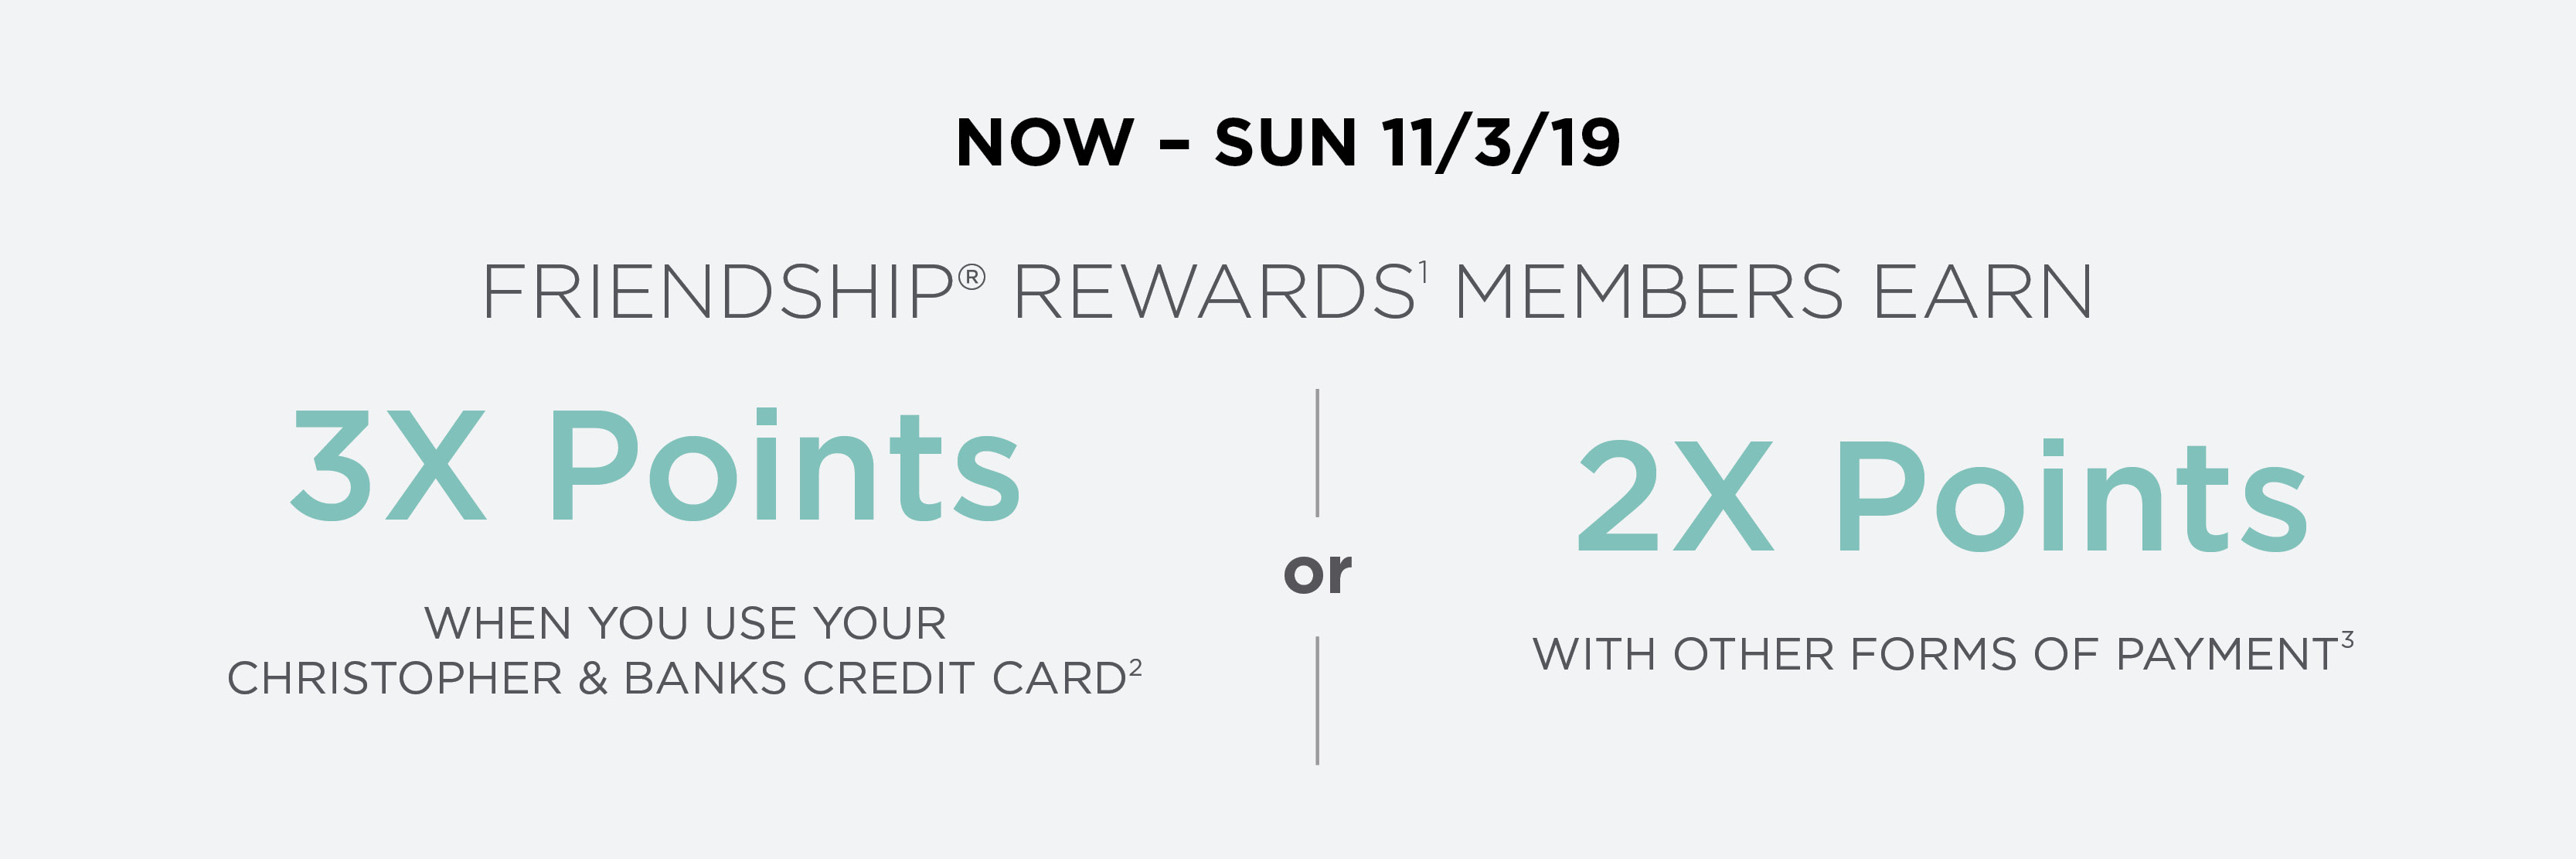 Now - Sun 11/3/19 Friendship Rewards 3X Points When You Use Your Christopher & Banks Credit Card OR 2X Points With Other Forms of Payment.